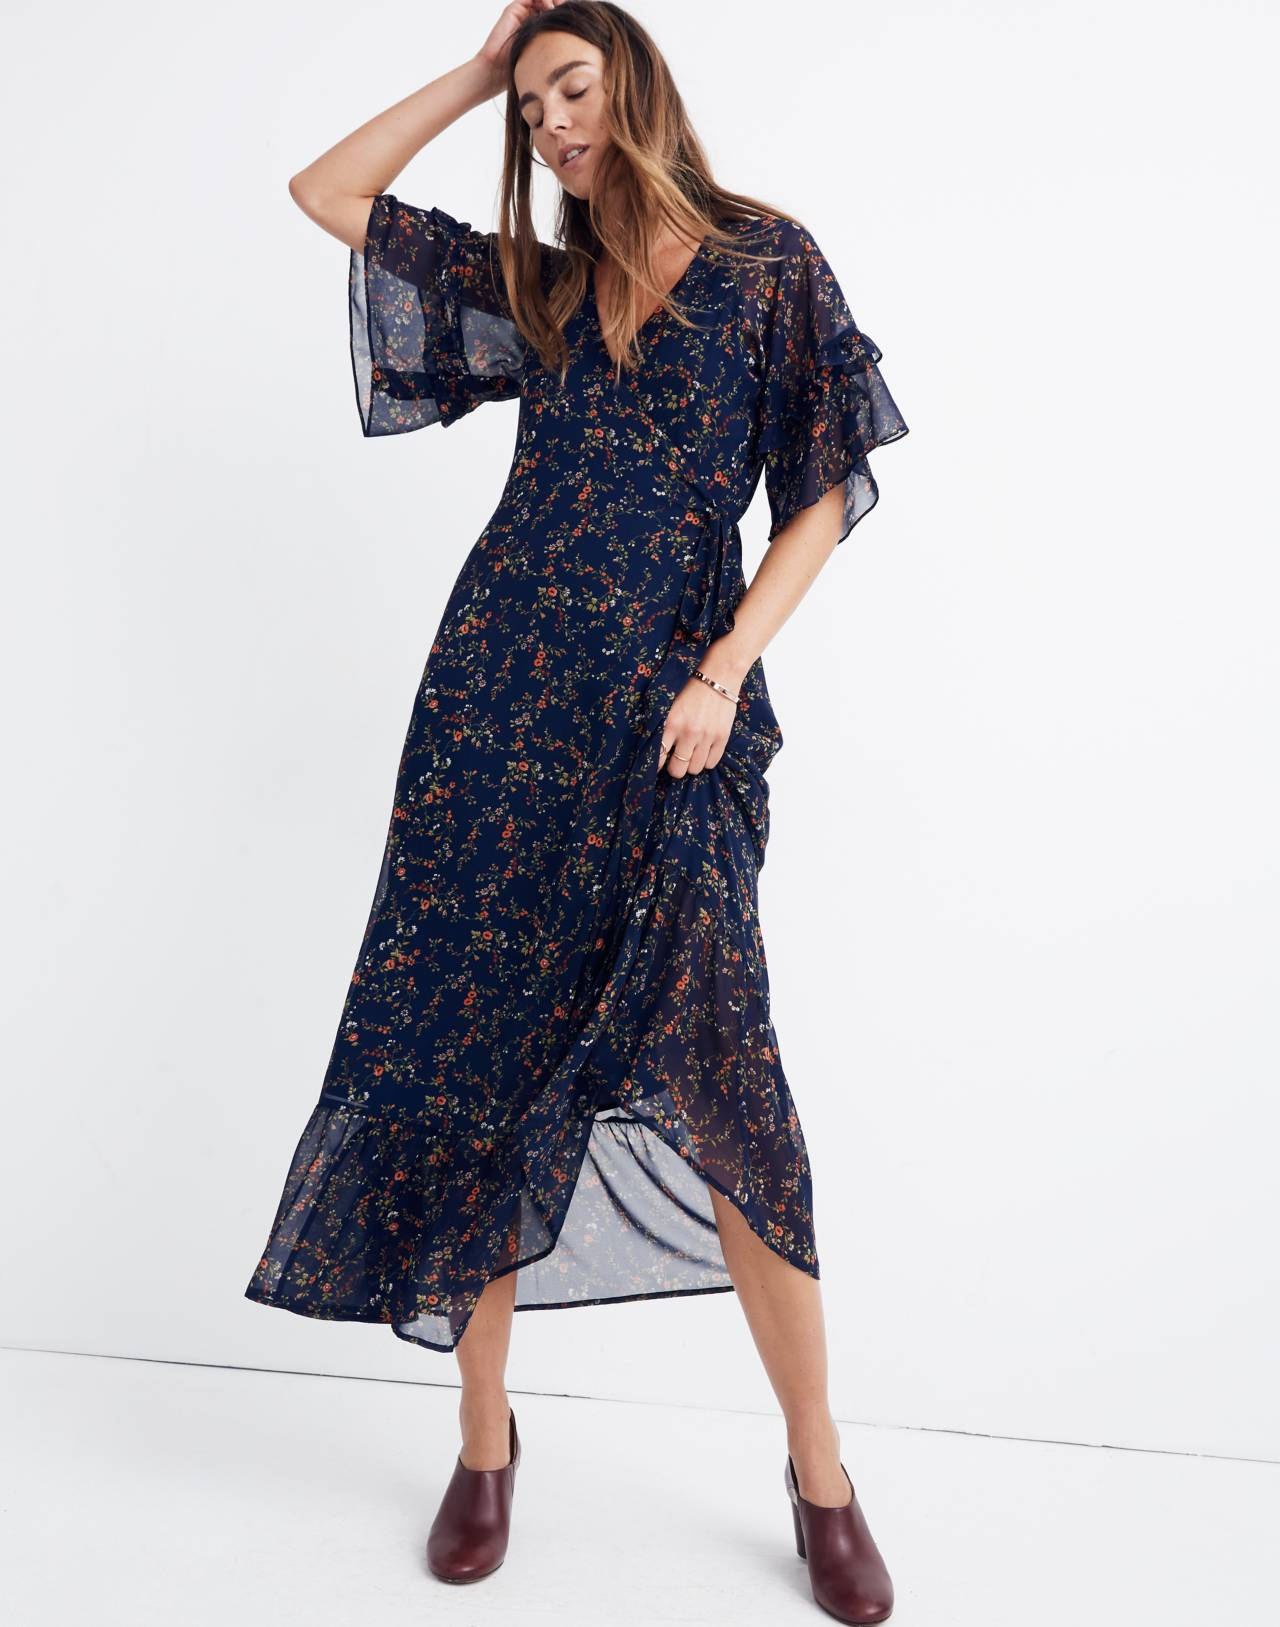 Vervain Ruffle-Sleeve Wrap Dress in Moonless Floral in whisper moonless night image 1